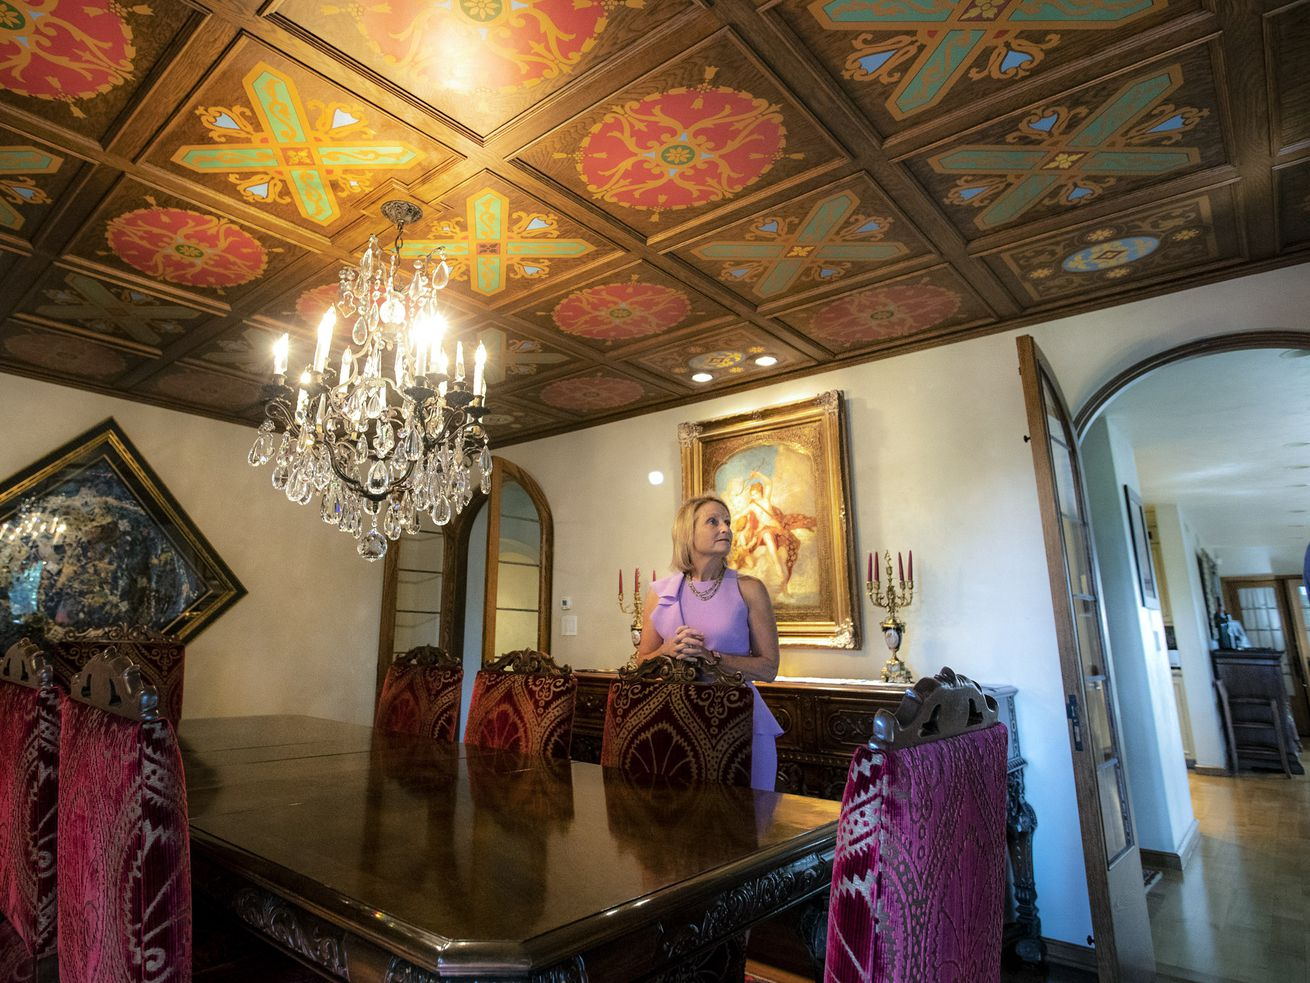 Westminster College president Beth Dobkin gives a tour of the historic Westminster Holt Home in Salt Lake City on Tuesday, Aug. 13, 2019. The 8,019-square-foot home was built in 1926 and was given to Westminster College by Sheri and Dale Holt. The French chateau-style home will be used for entertaining and meeting space as well as the college president's residence.